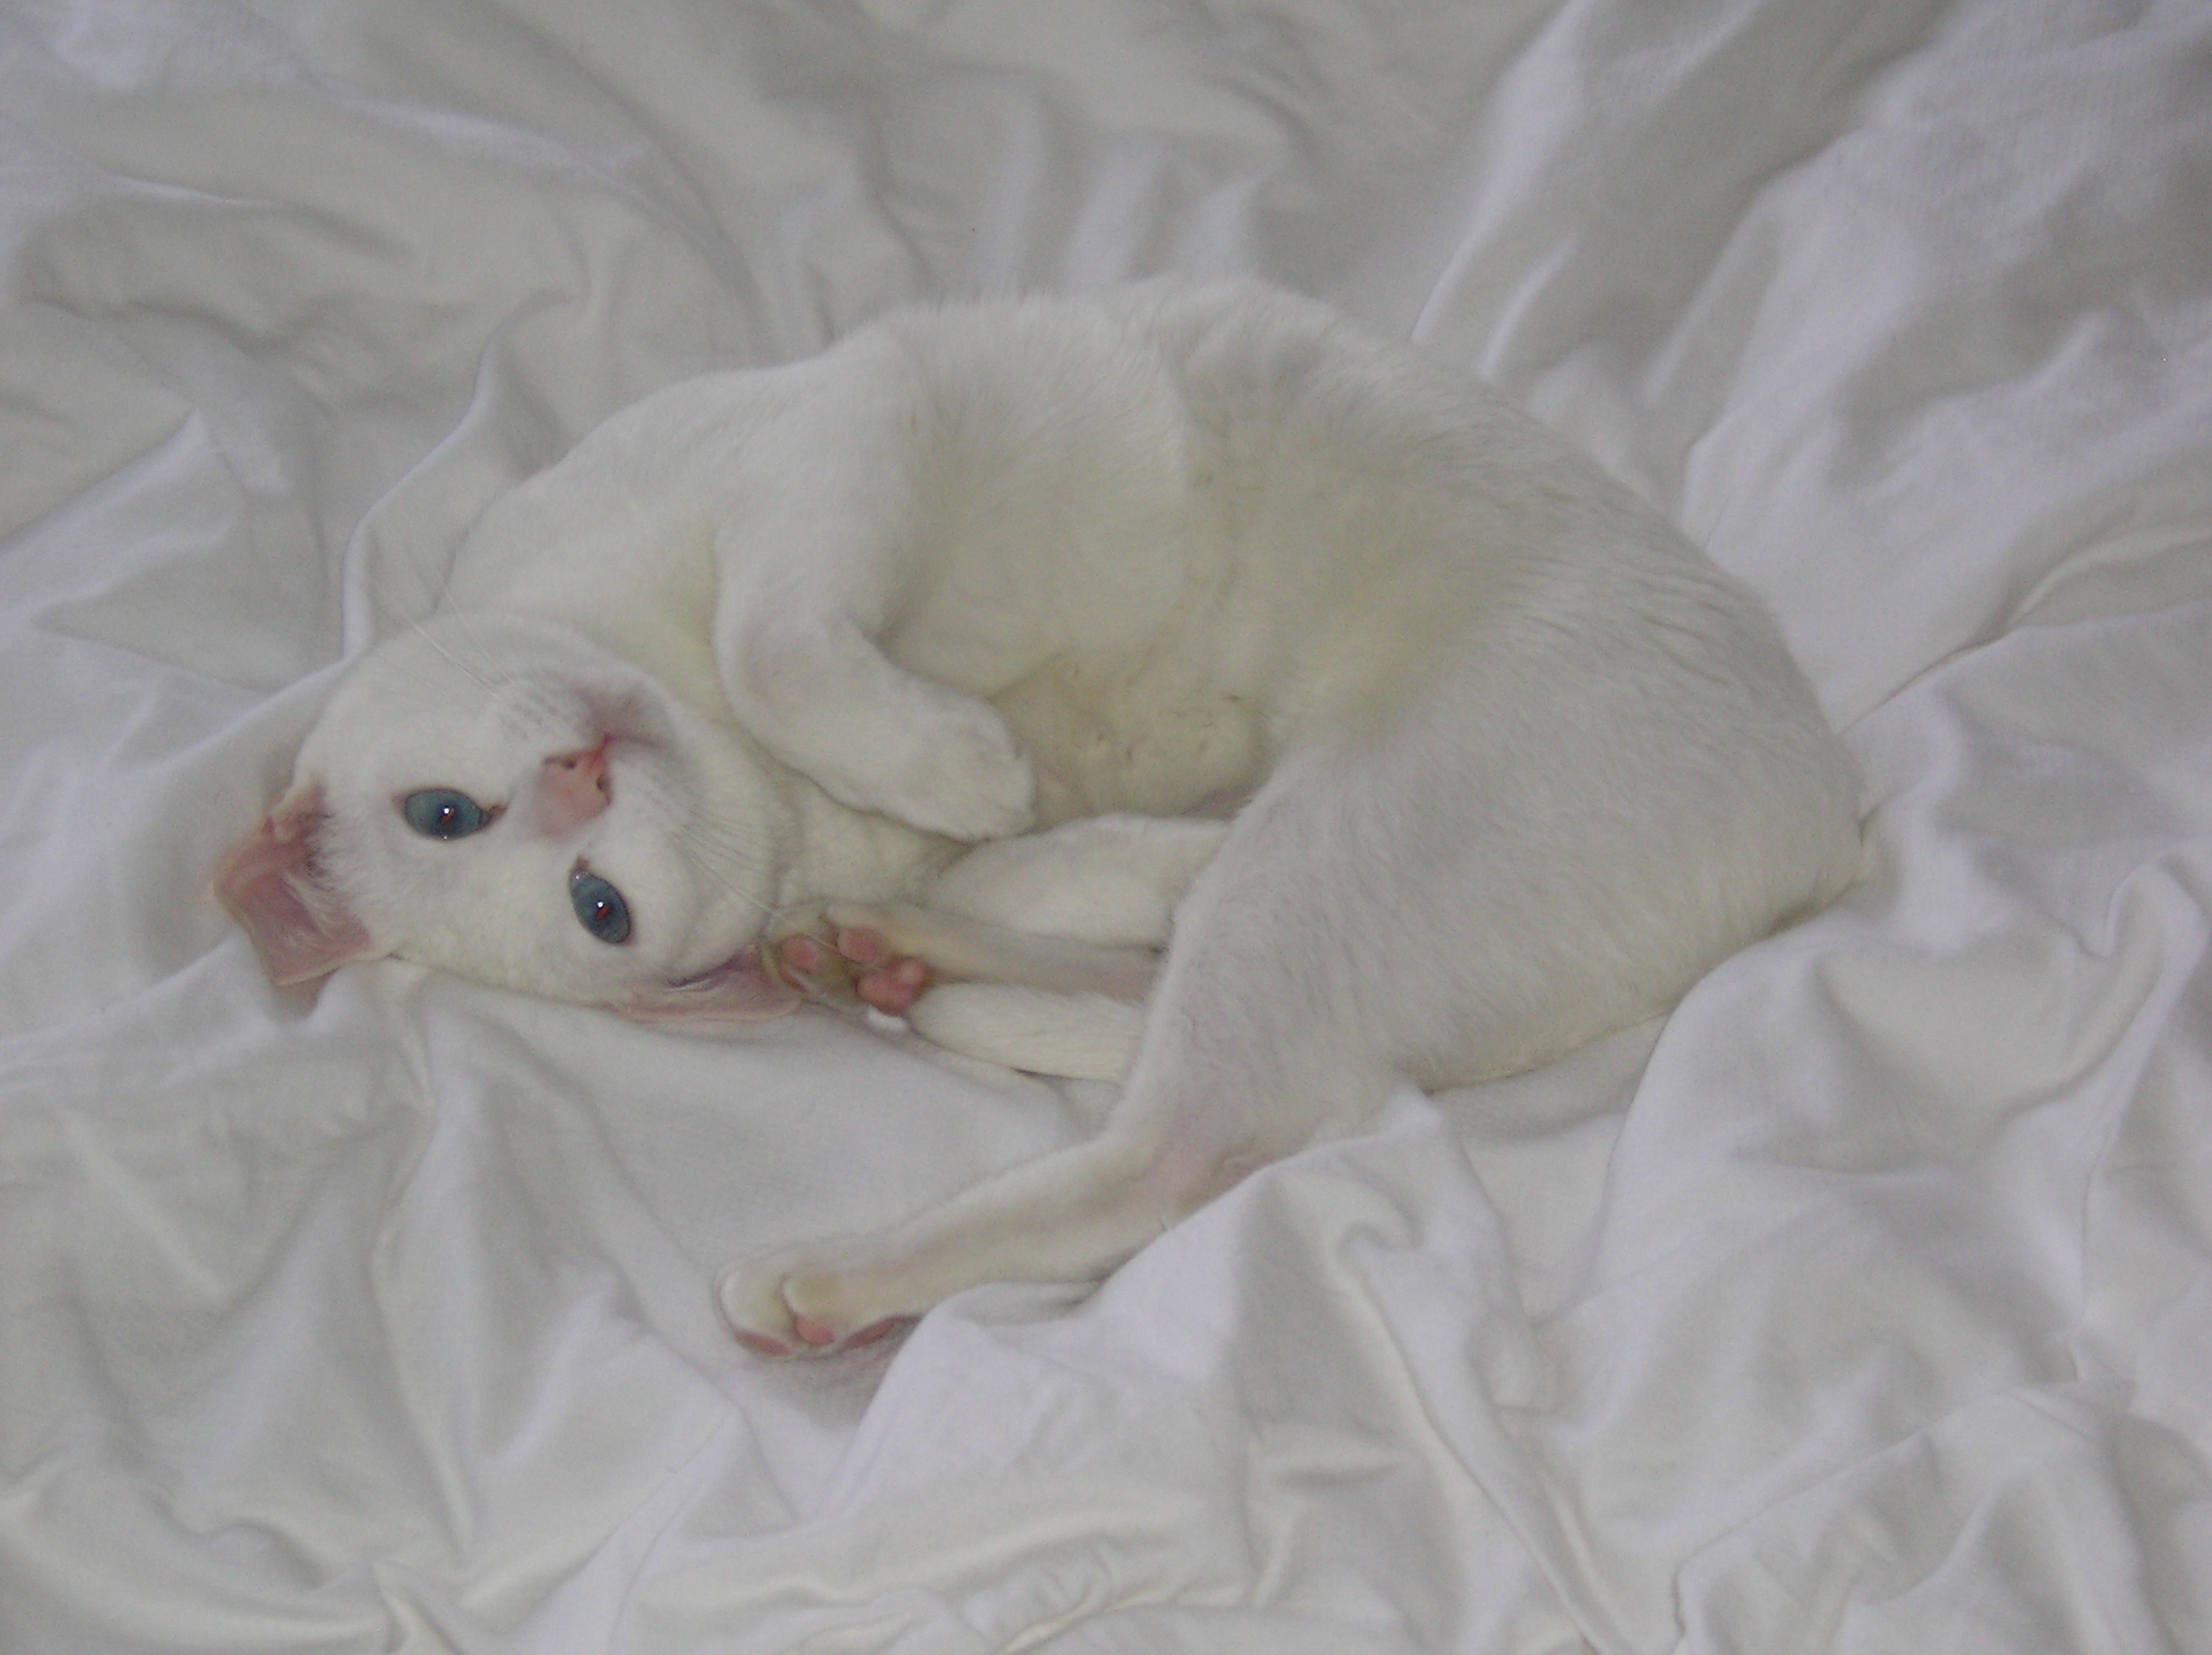 Khao Manee Kitten: Khao Khao Manee Kitten On The Bed Breed